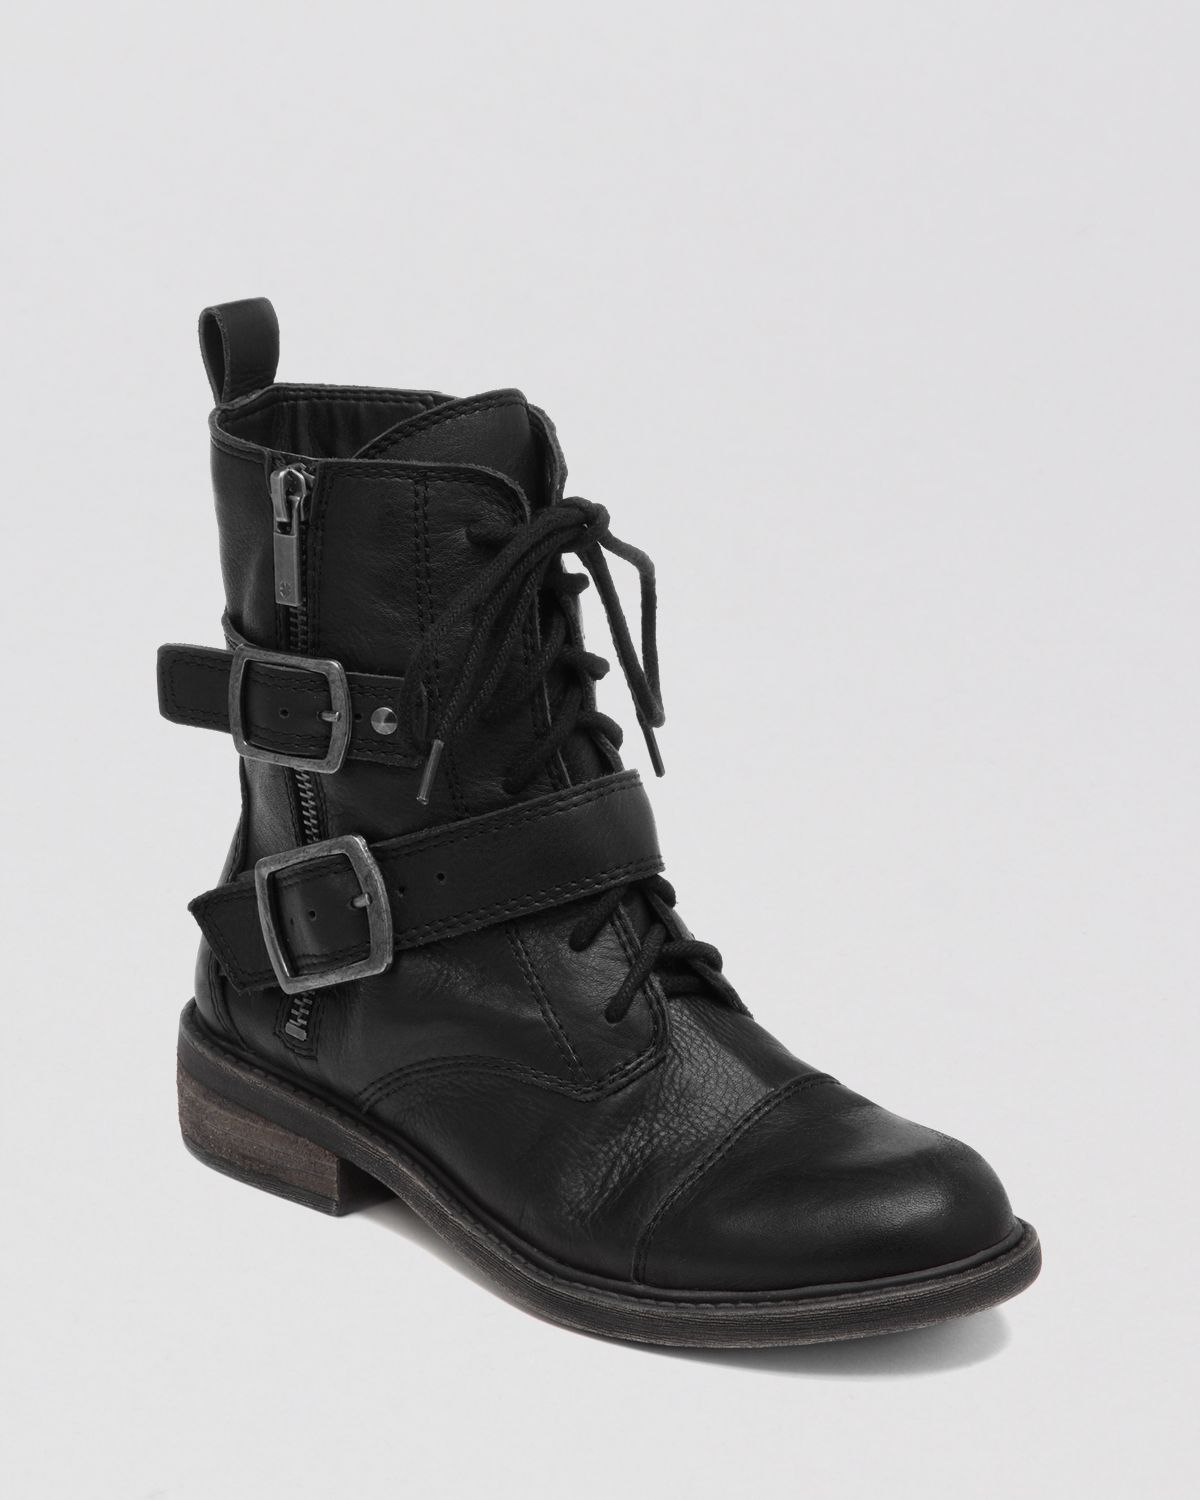 American Brand Leather Shoes